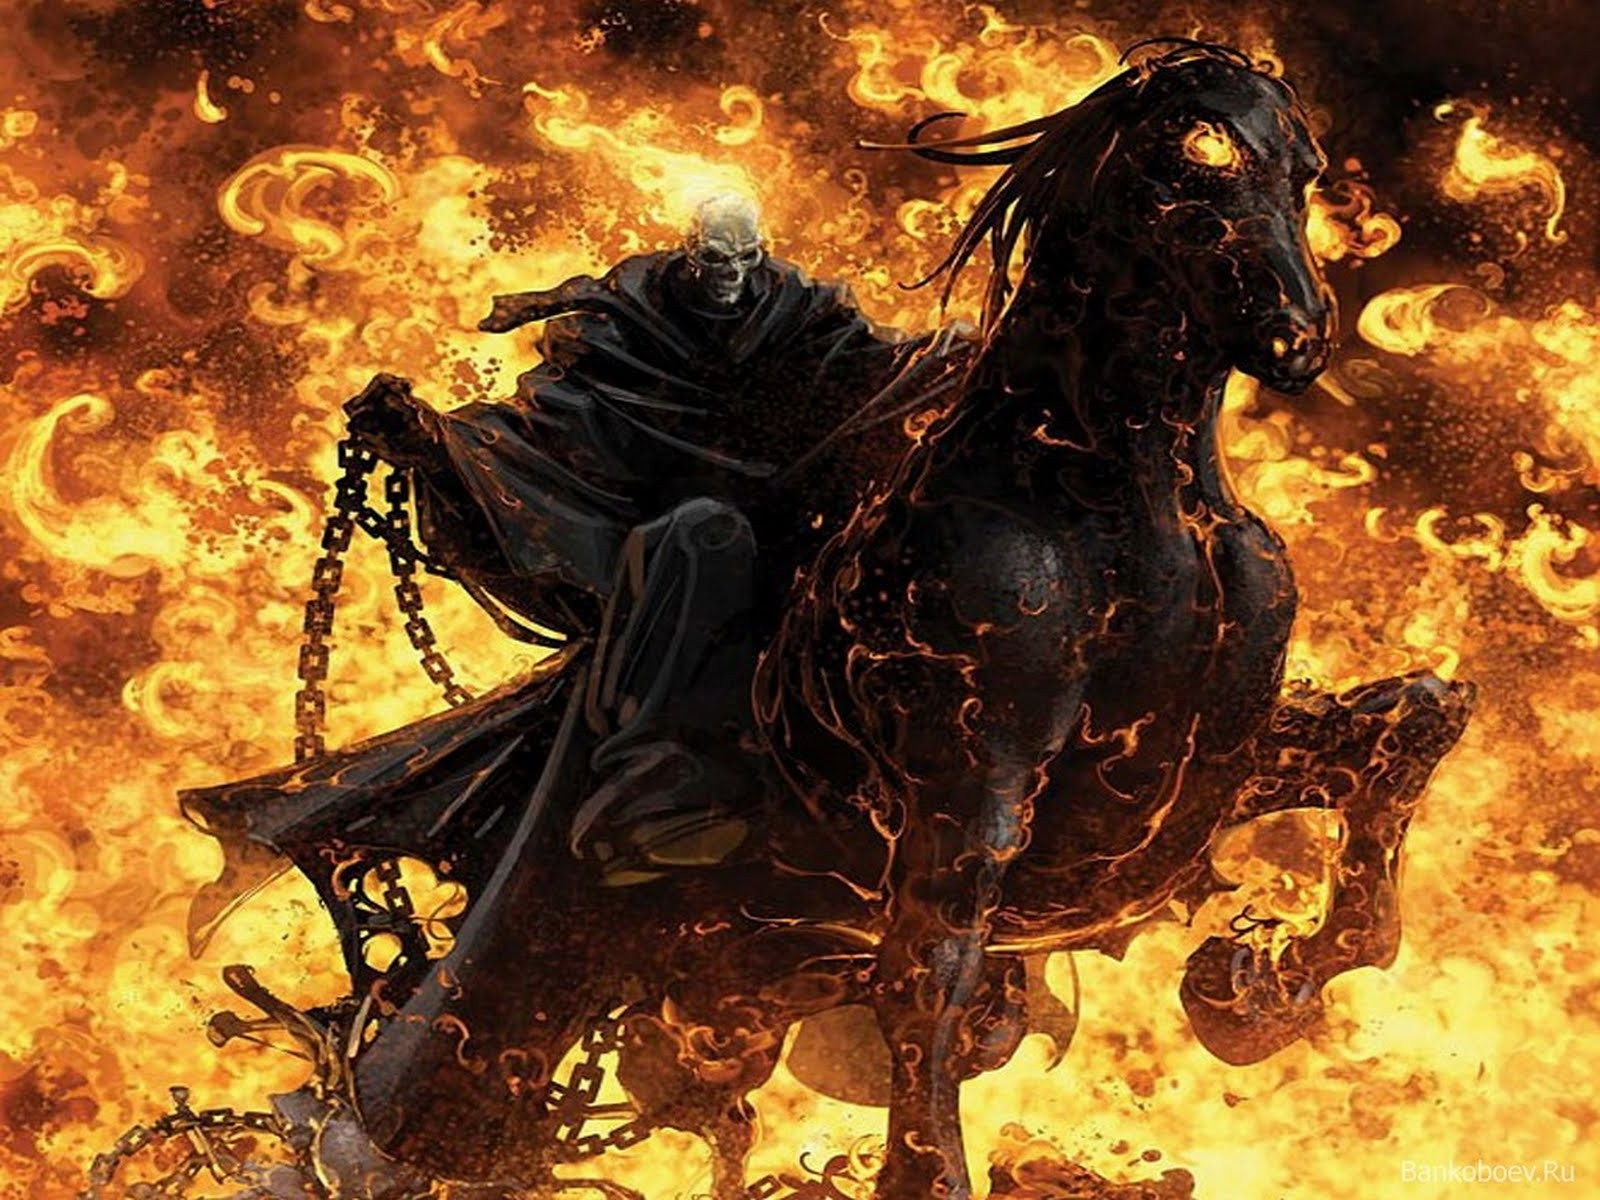 Only Wallpapers: Ghost Rider (film)